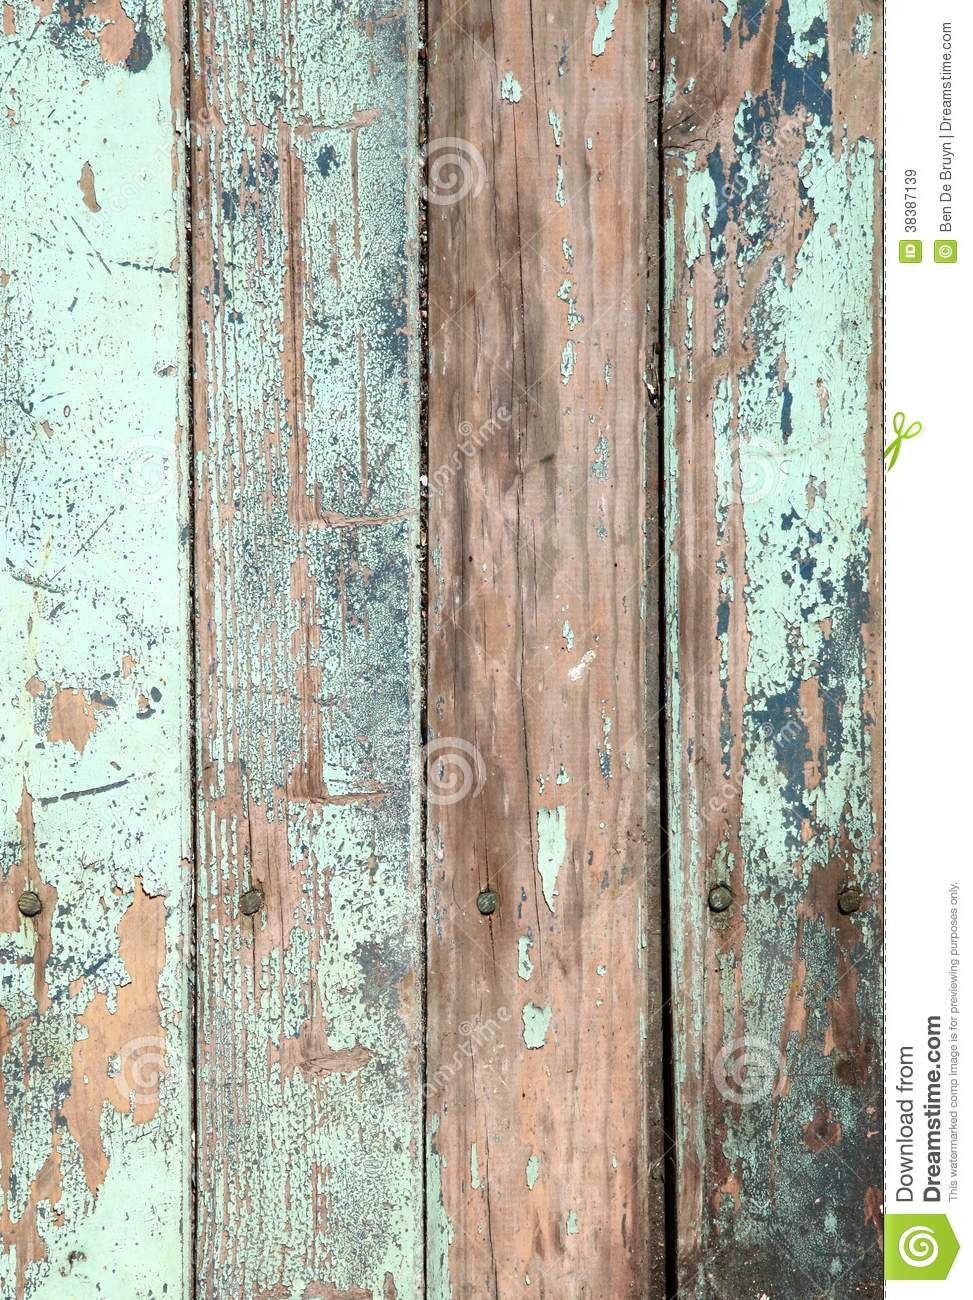 Weathered Old Wood Natural Blue Turquoise Paint Pe Royalty